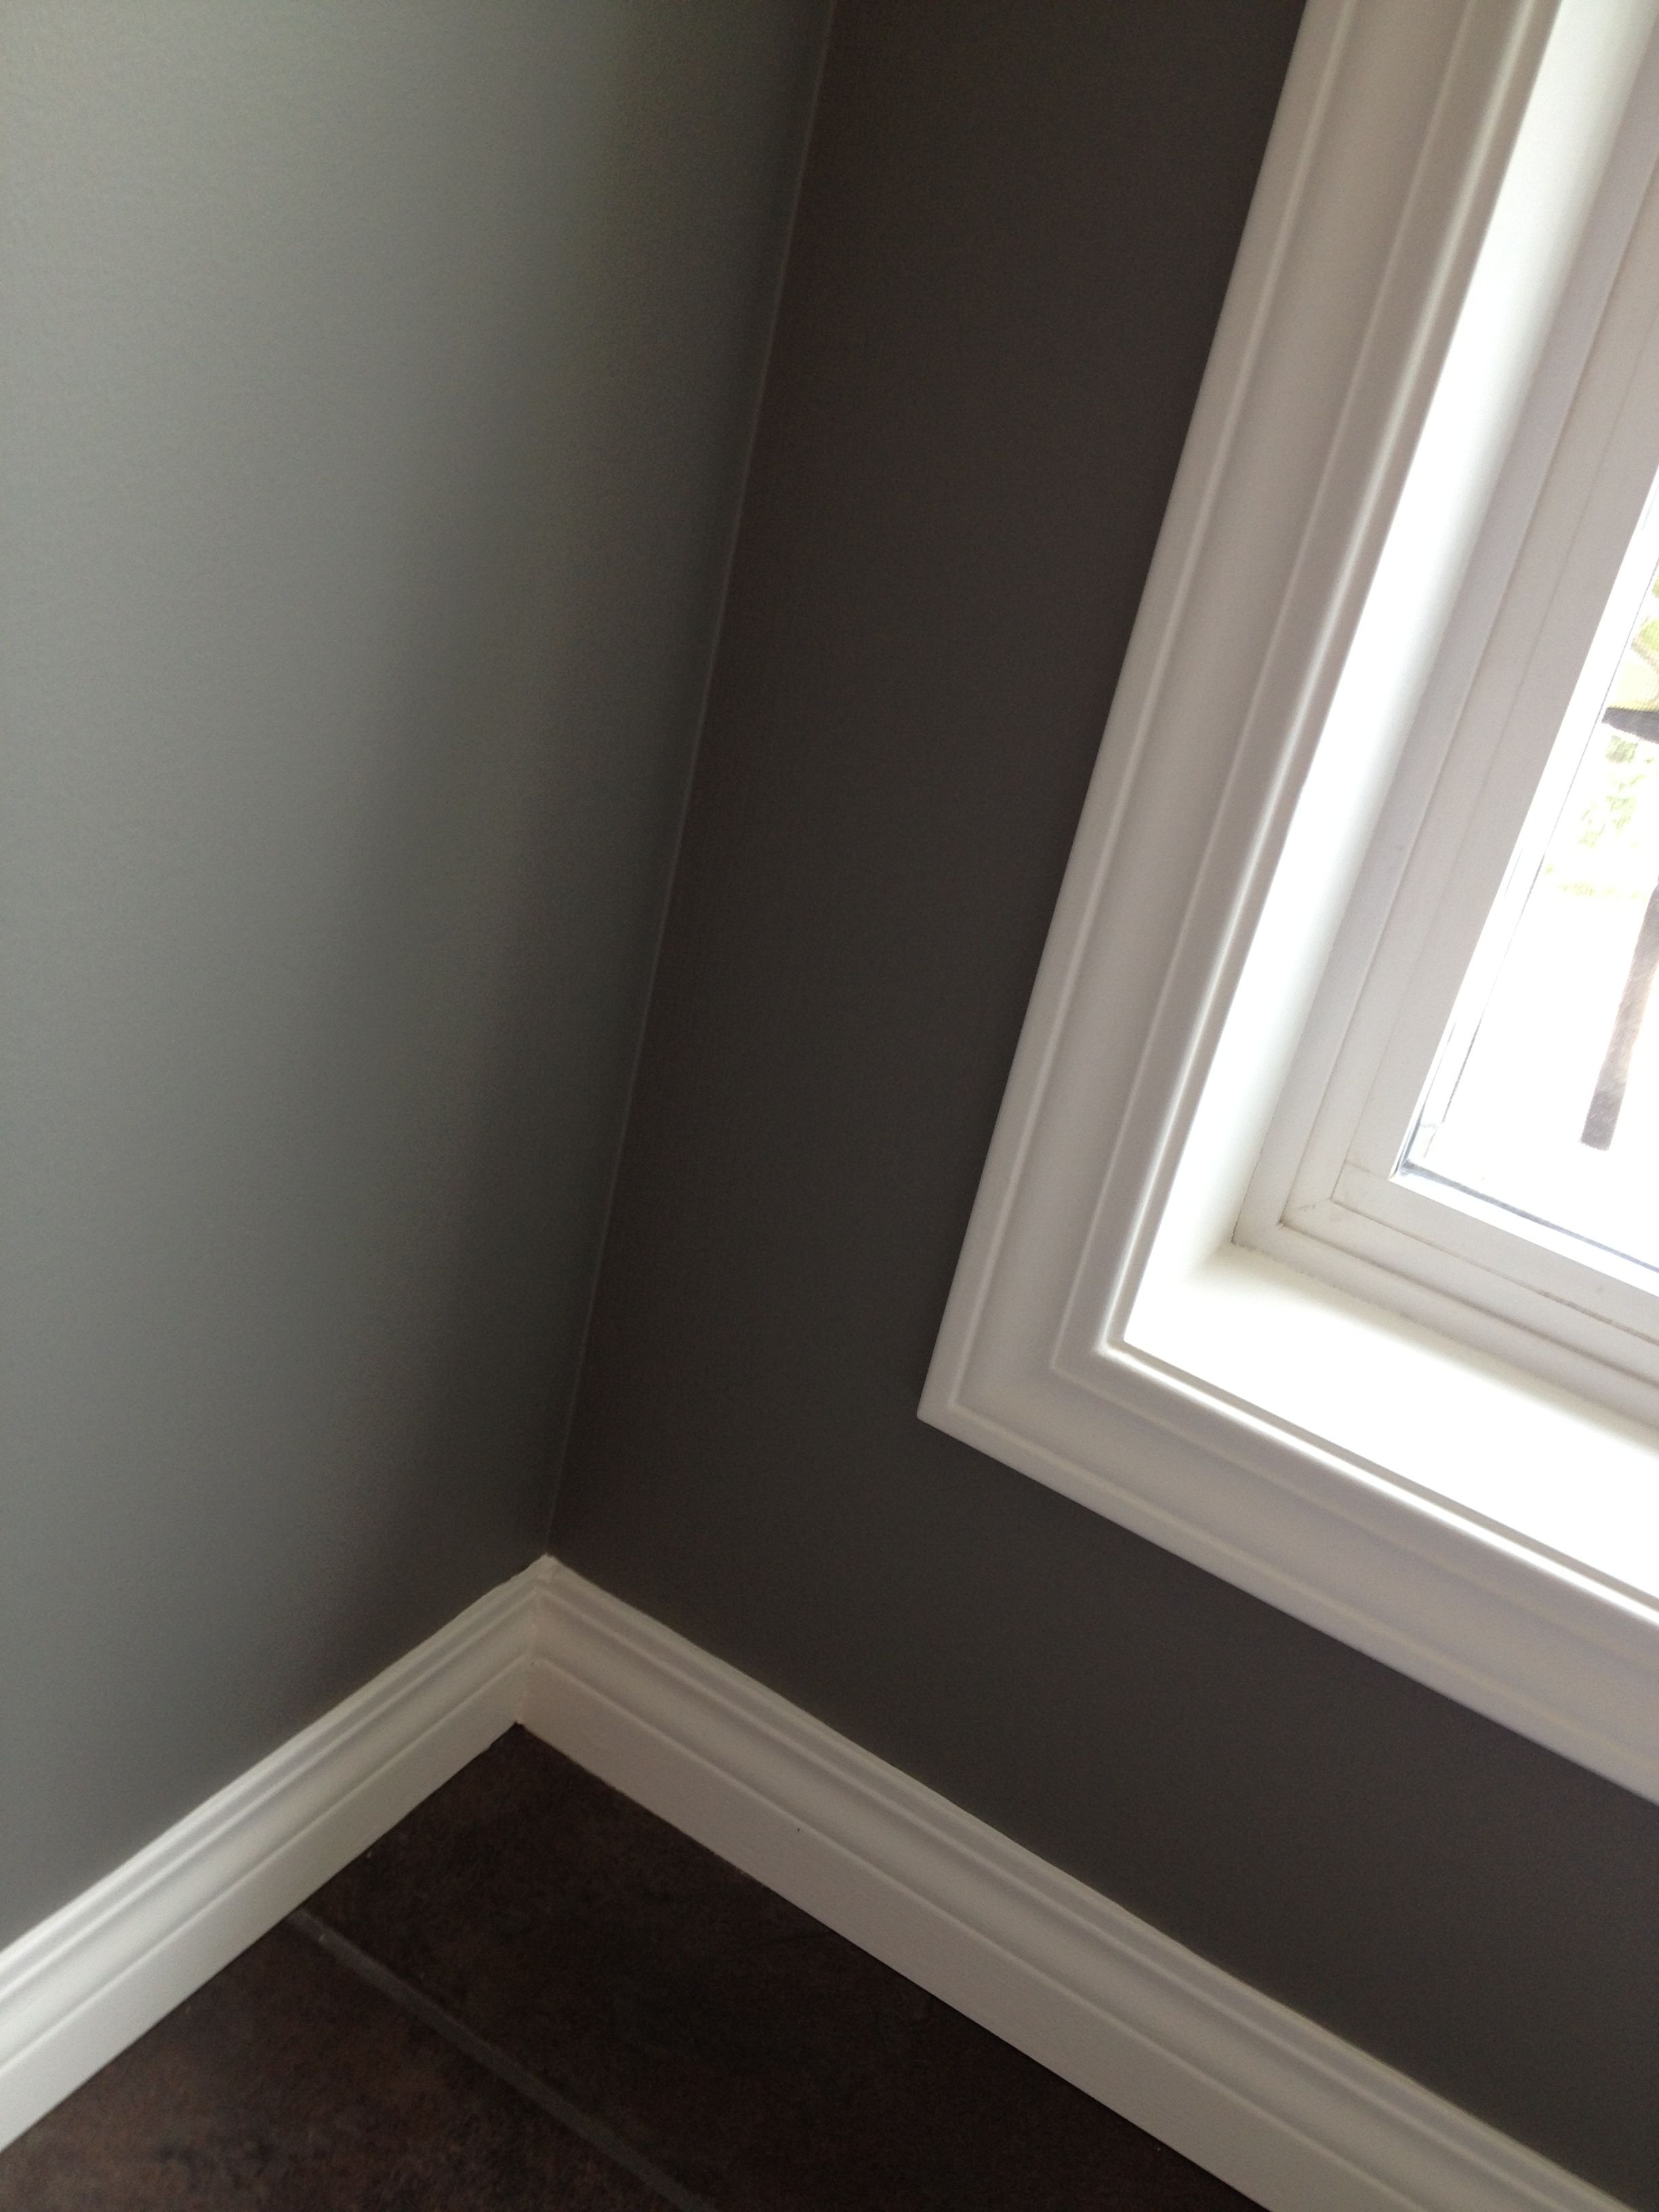 Pin By Nikki Oliva On Benjamin Moore And Other Paint Companies Grey Wall Color Updating House Grey Walls